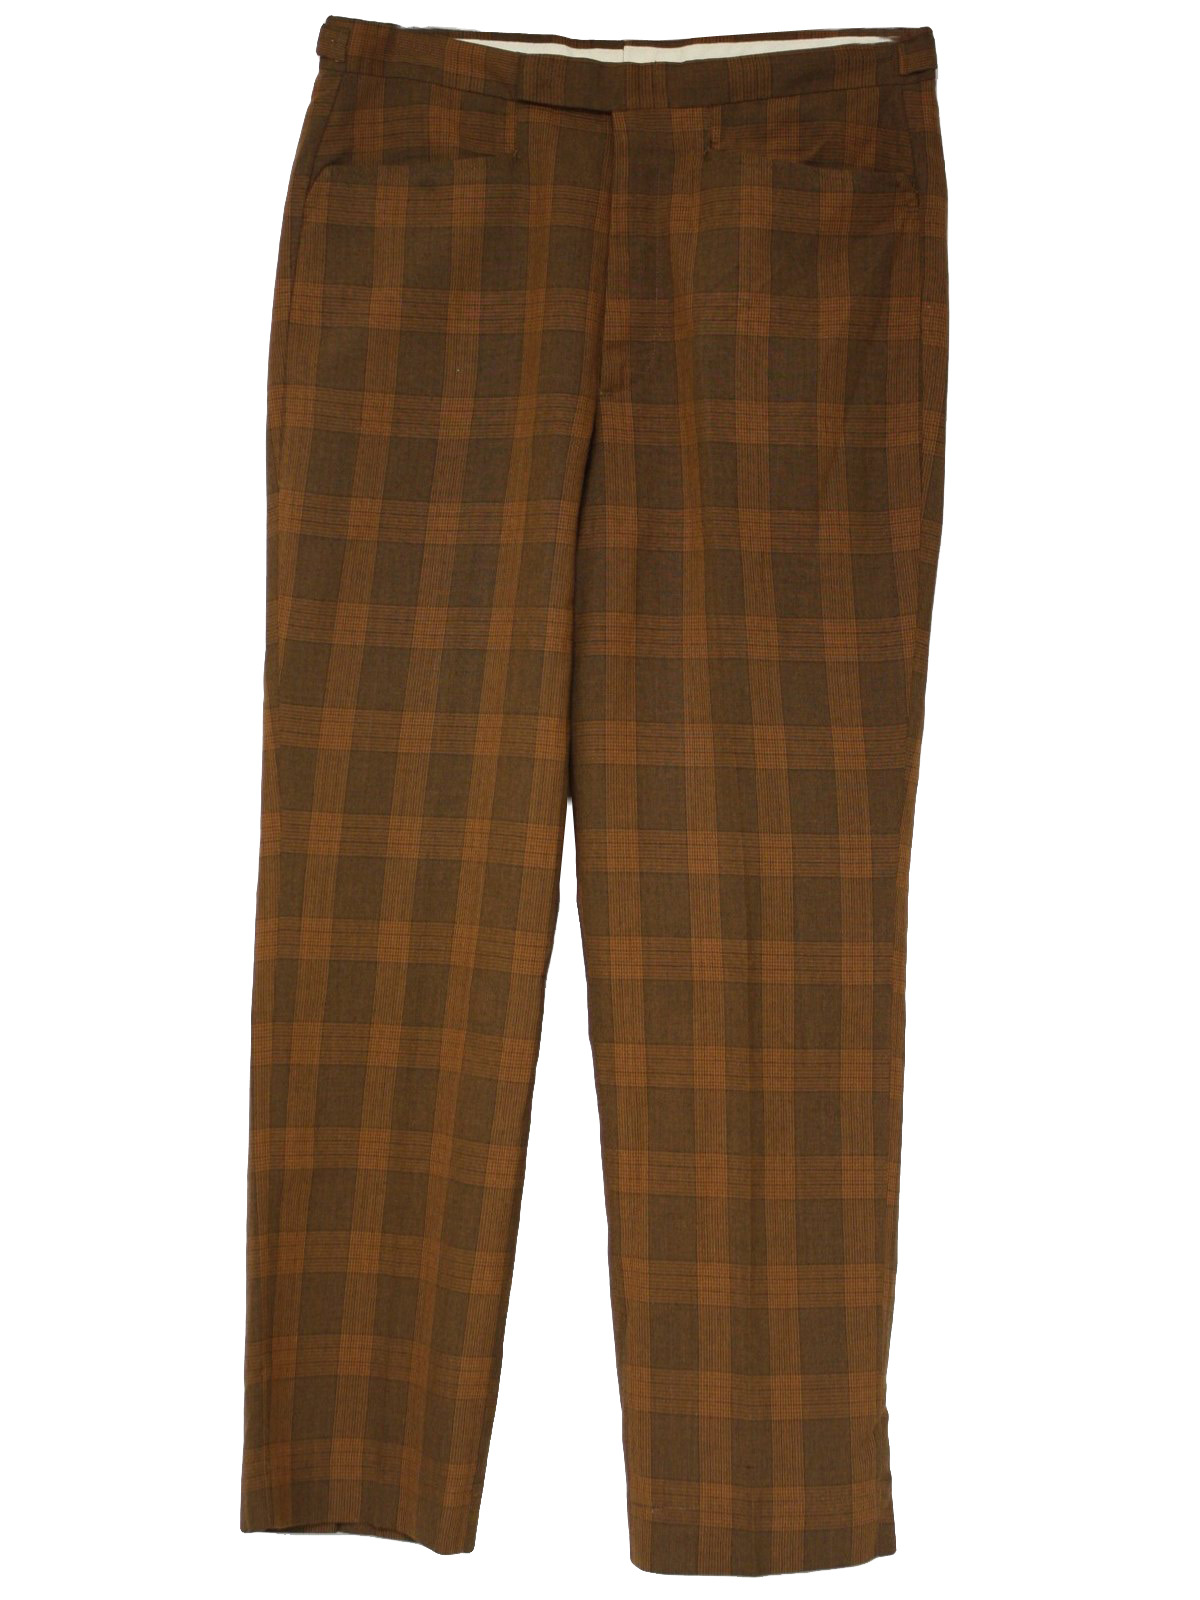 1960's Vintage Farah Pants: 60s -Farah- Mens rust and brown cotton ...